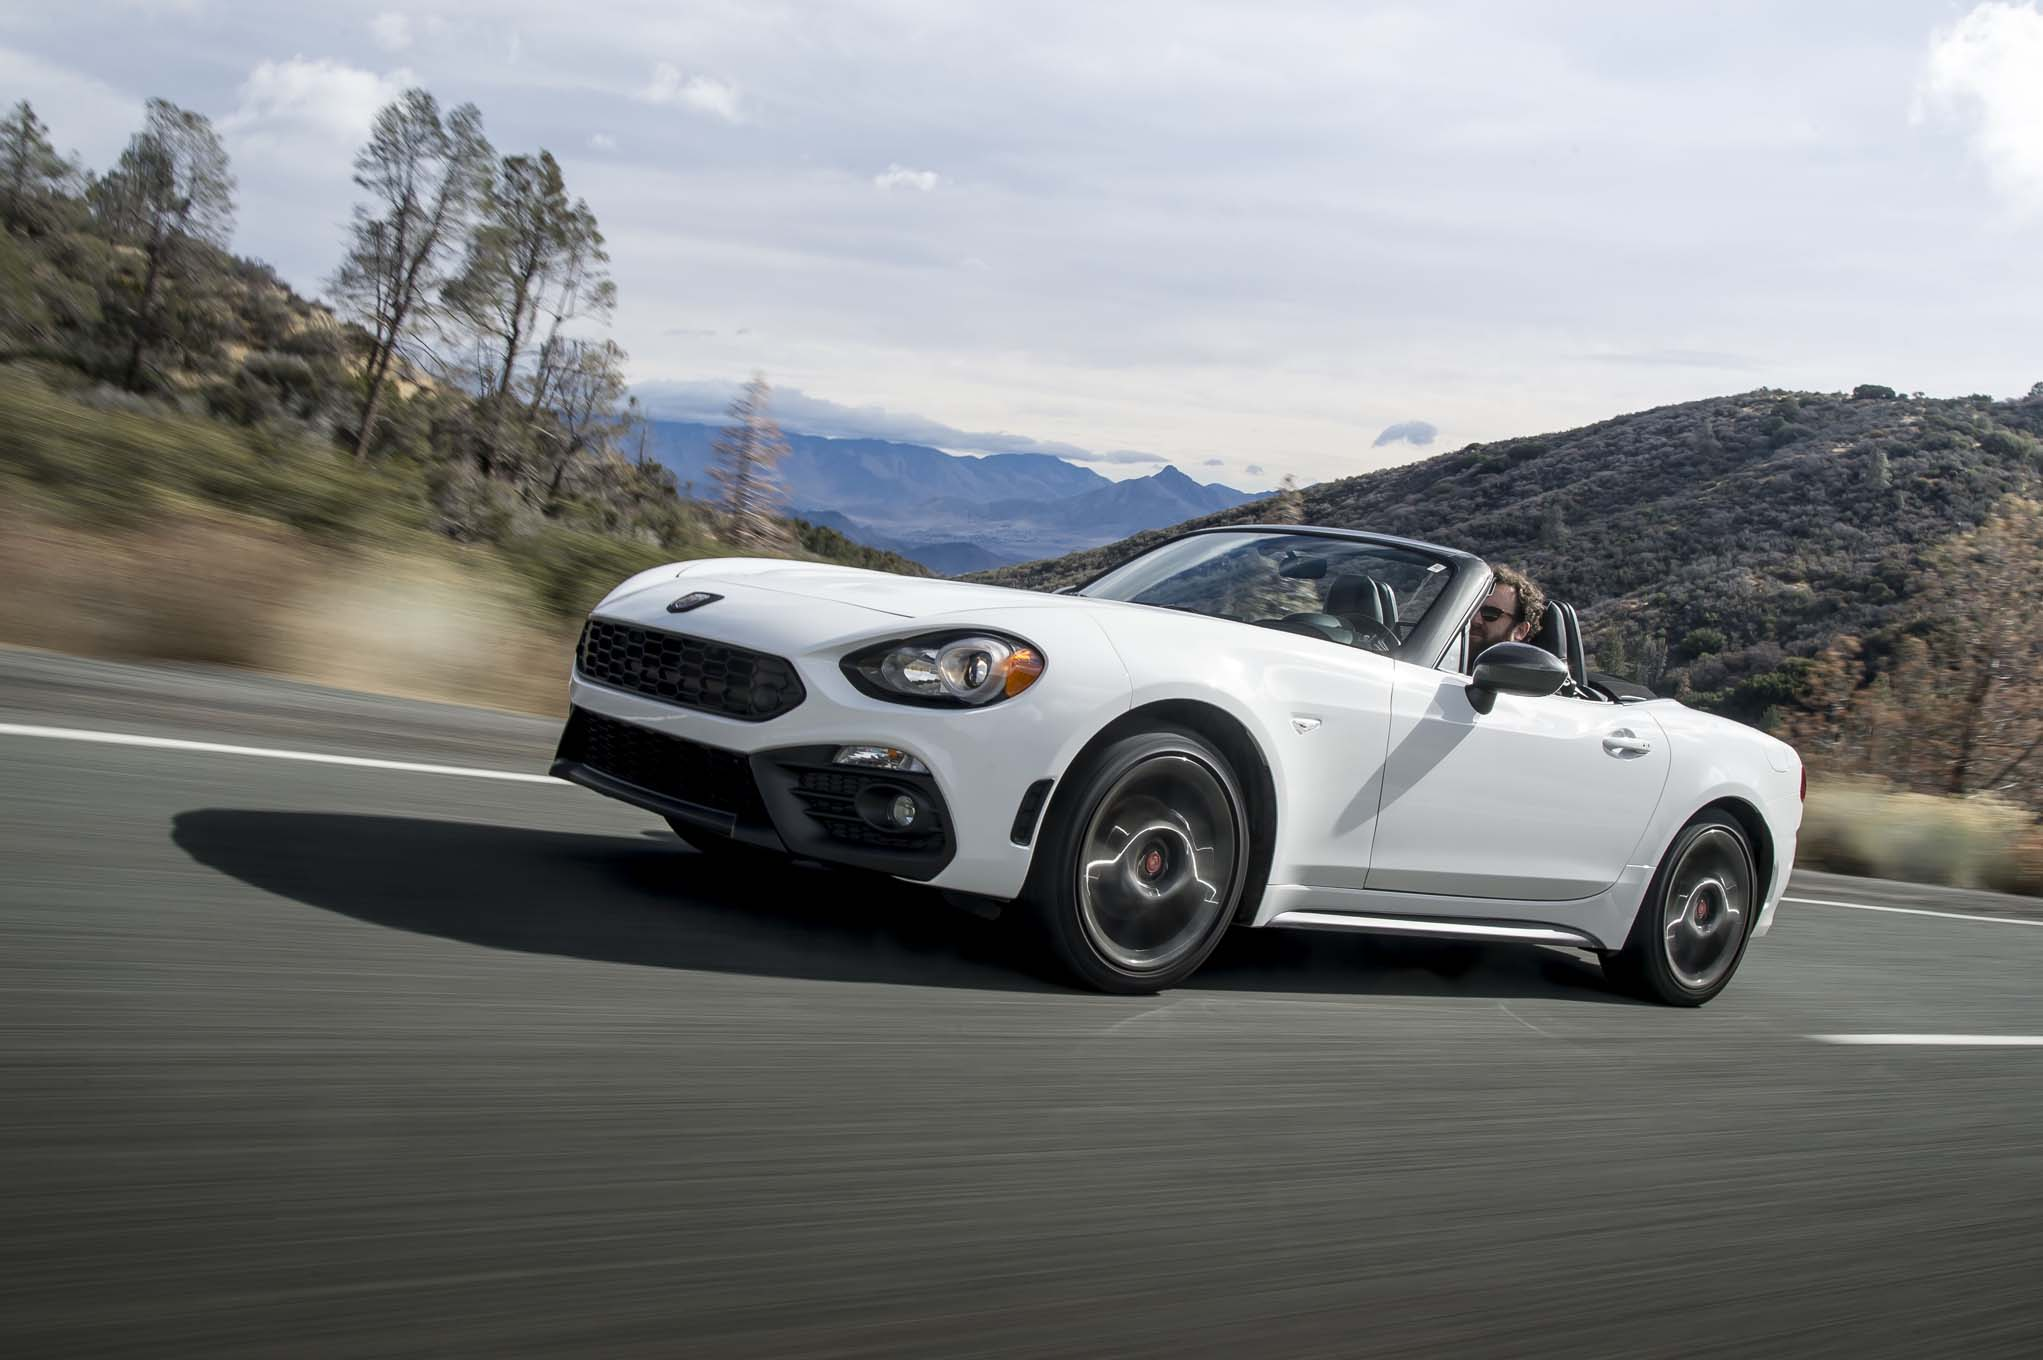 2017 Fiat 124 Spider Abarth front three quarter in motion